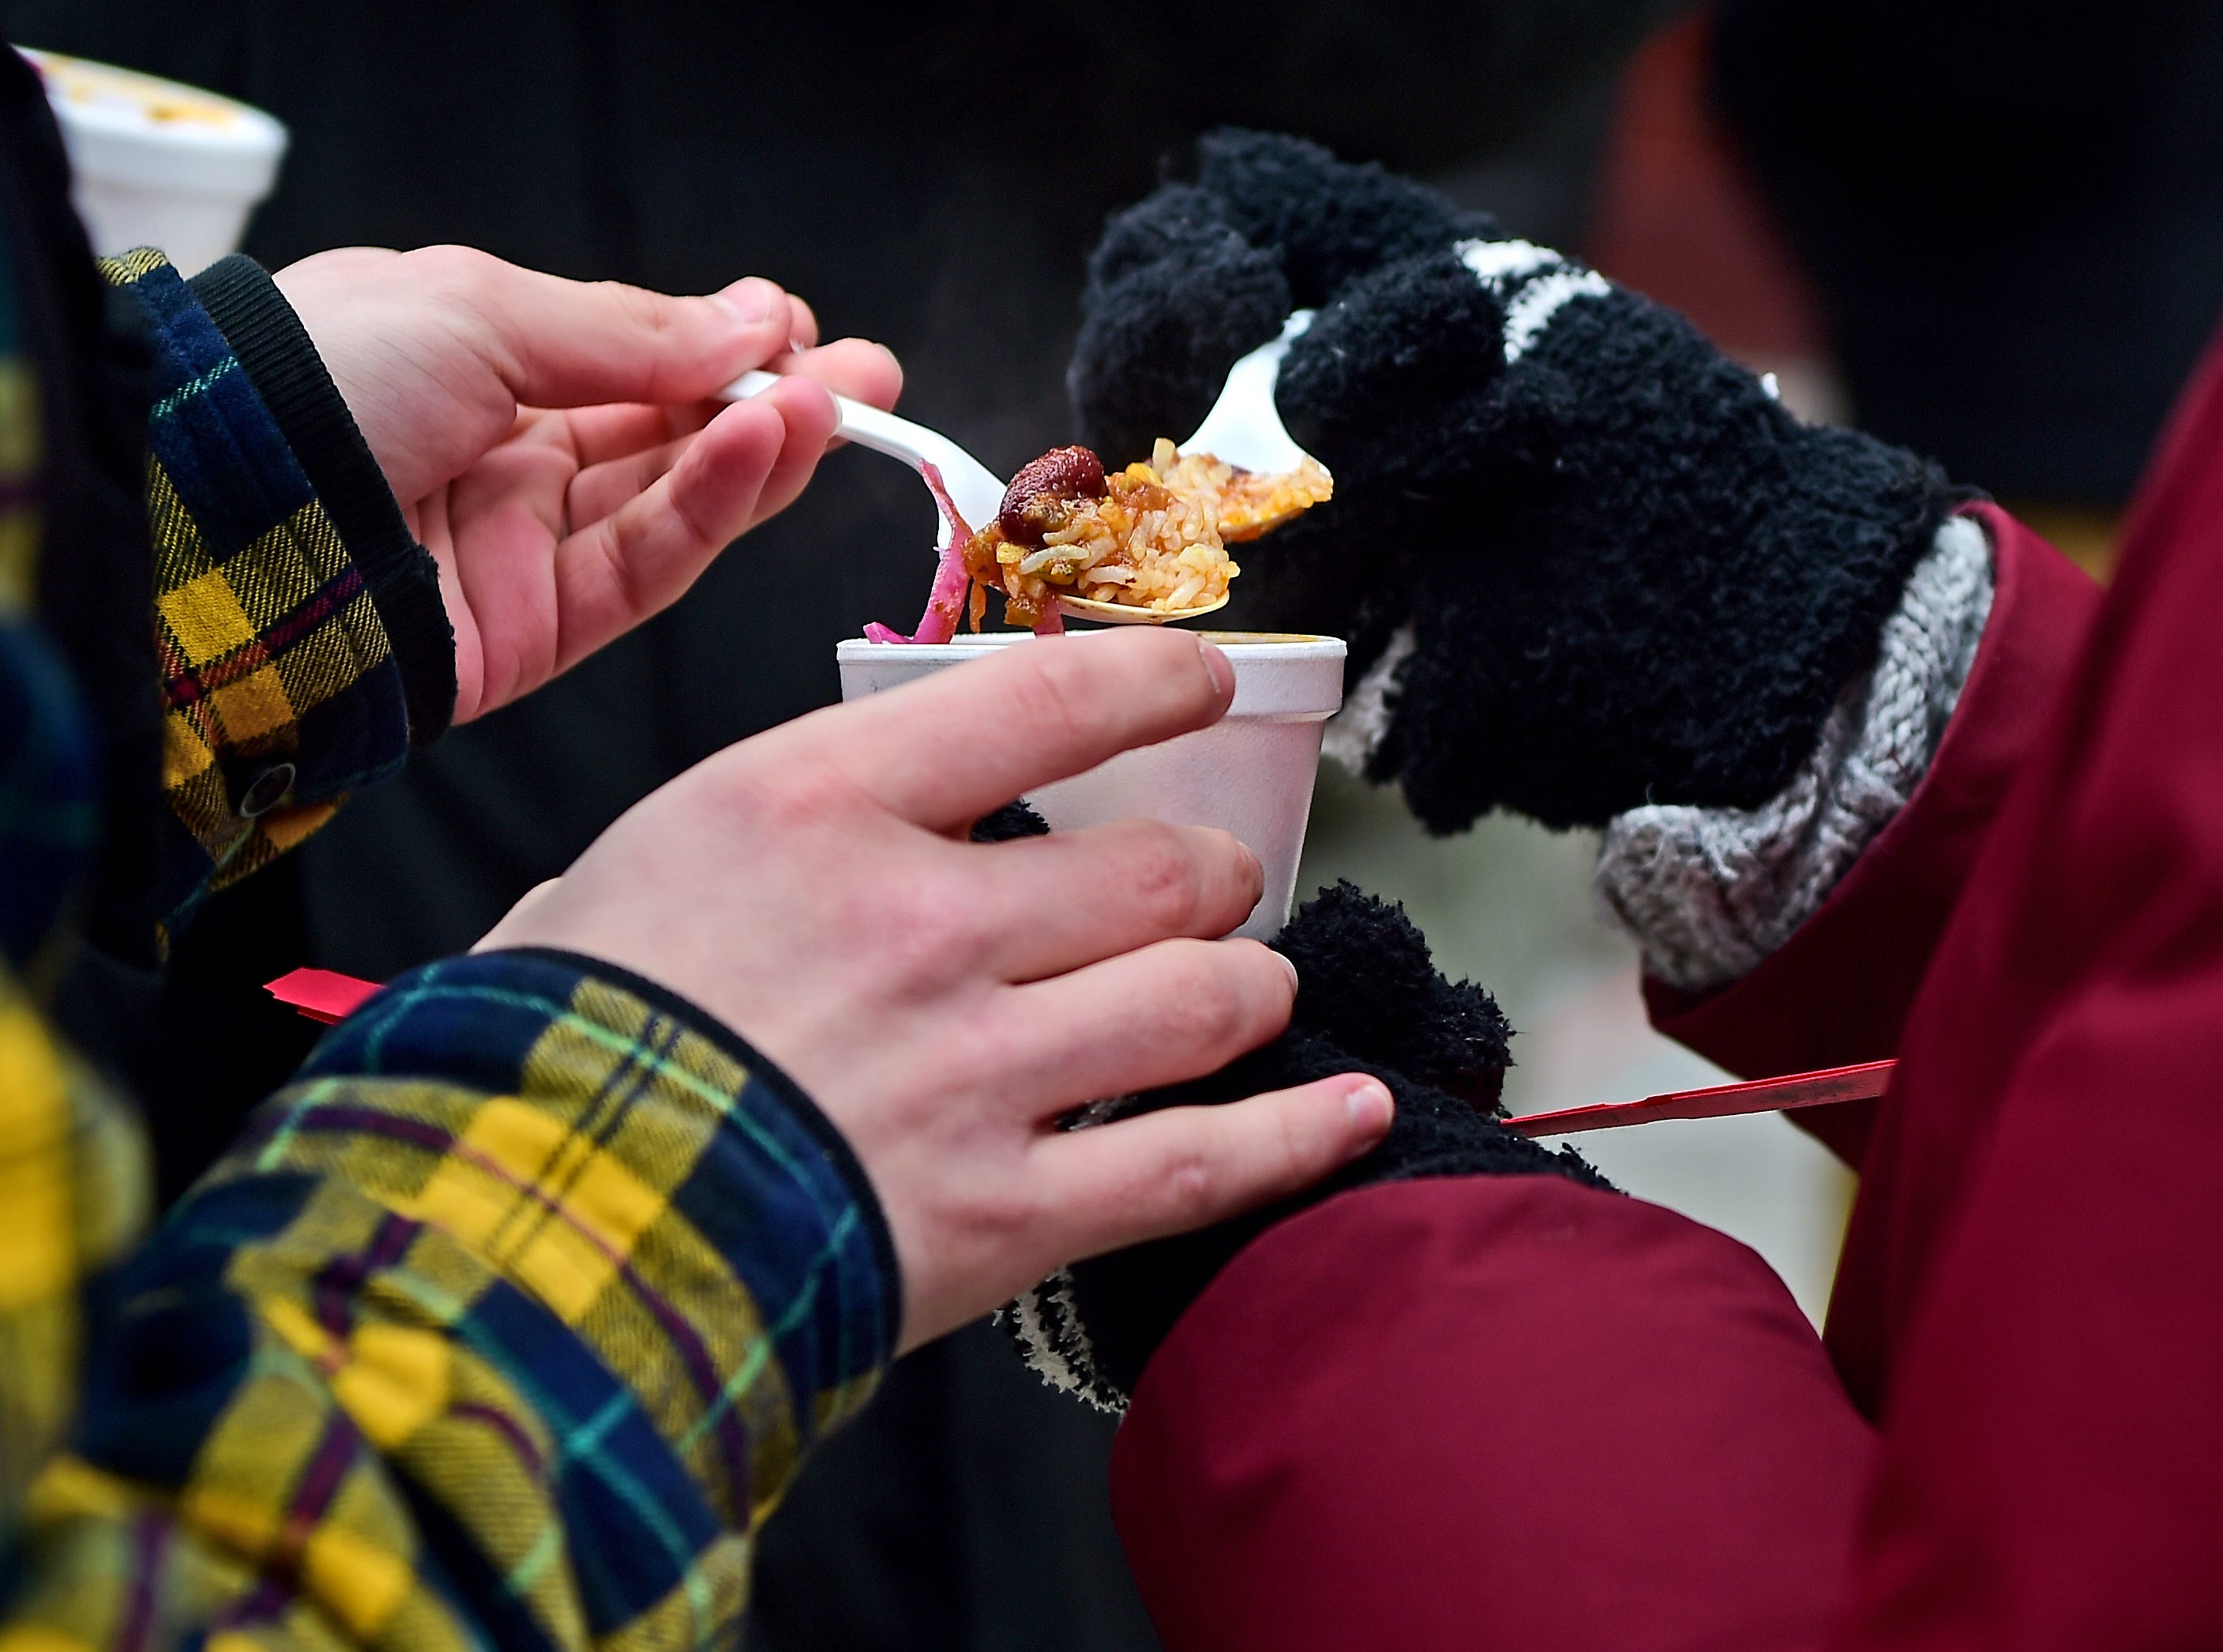 The 21st Annual Downtown Ithaca Chili Cook-off was held on the Ithaca Commons on Saturday. The event featured unique meat, vegetarian and vegan chilis made by local restaurants. February 8, 2019.